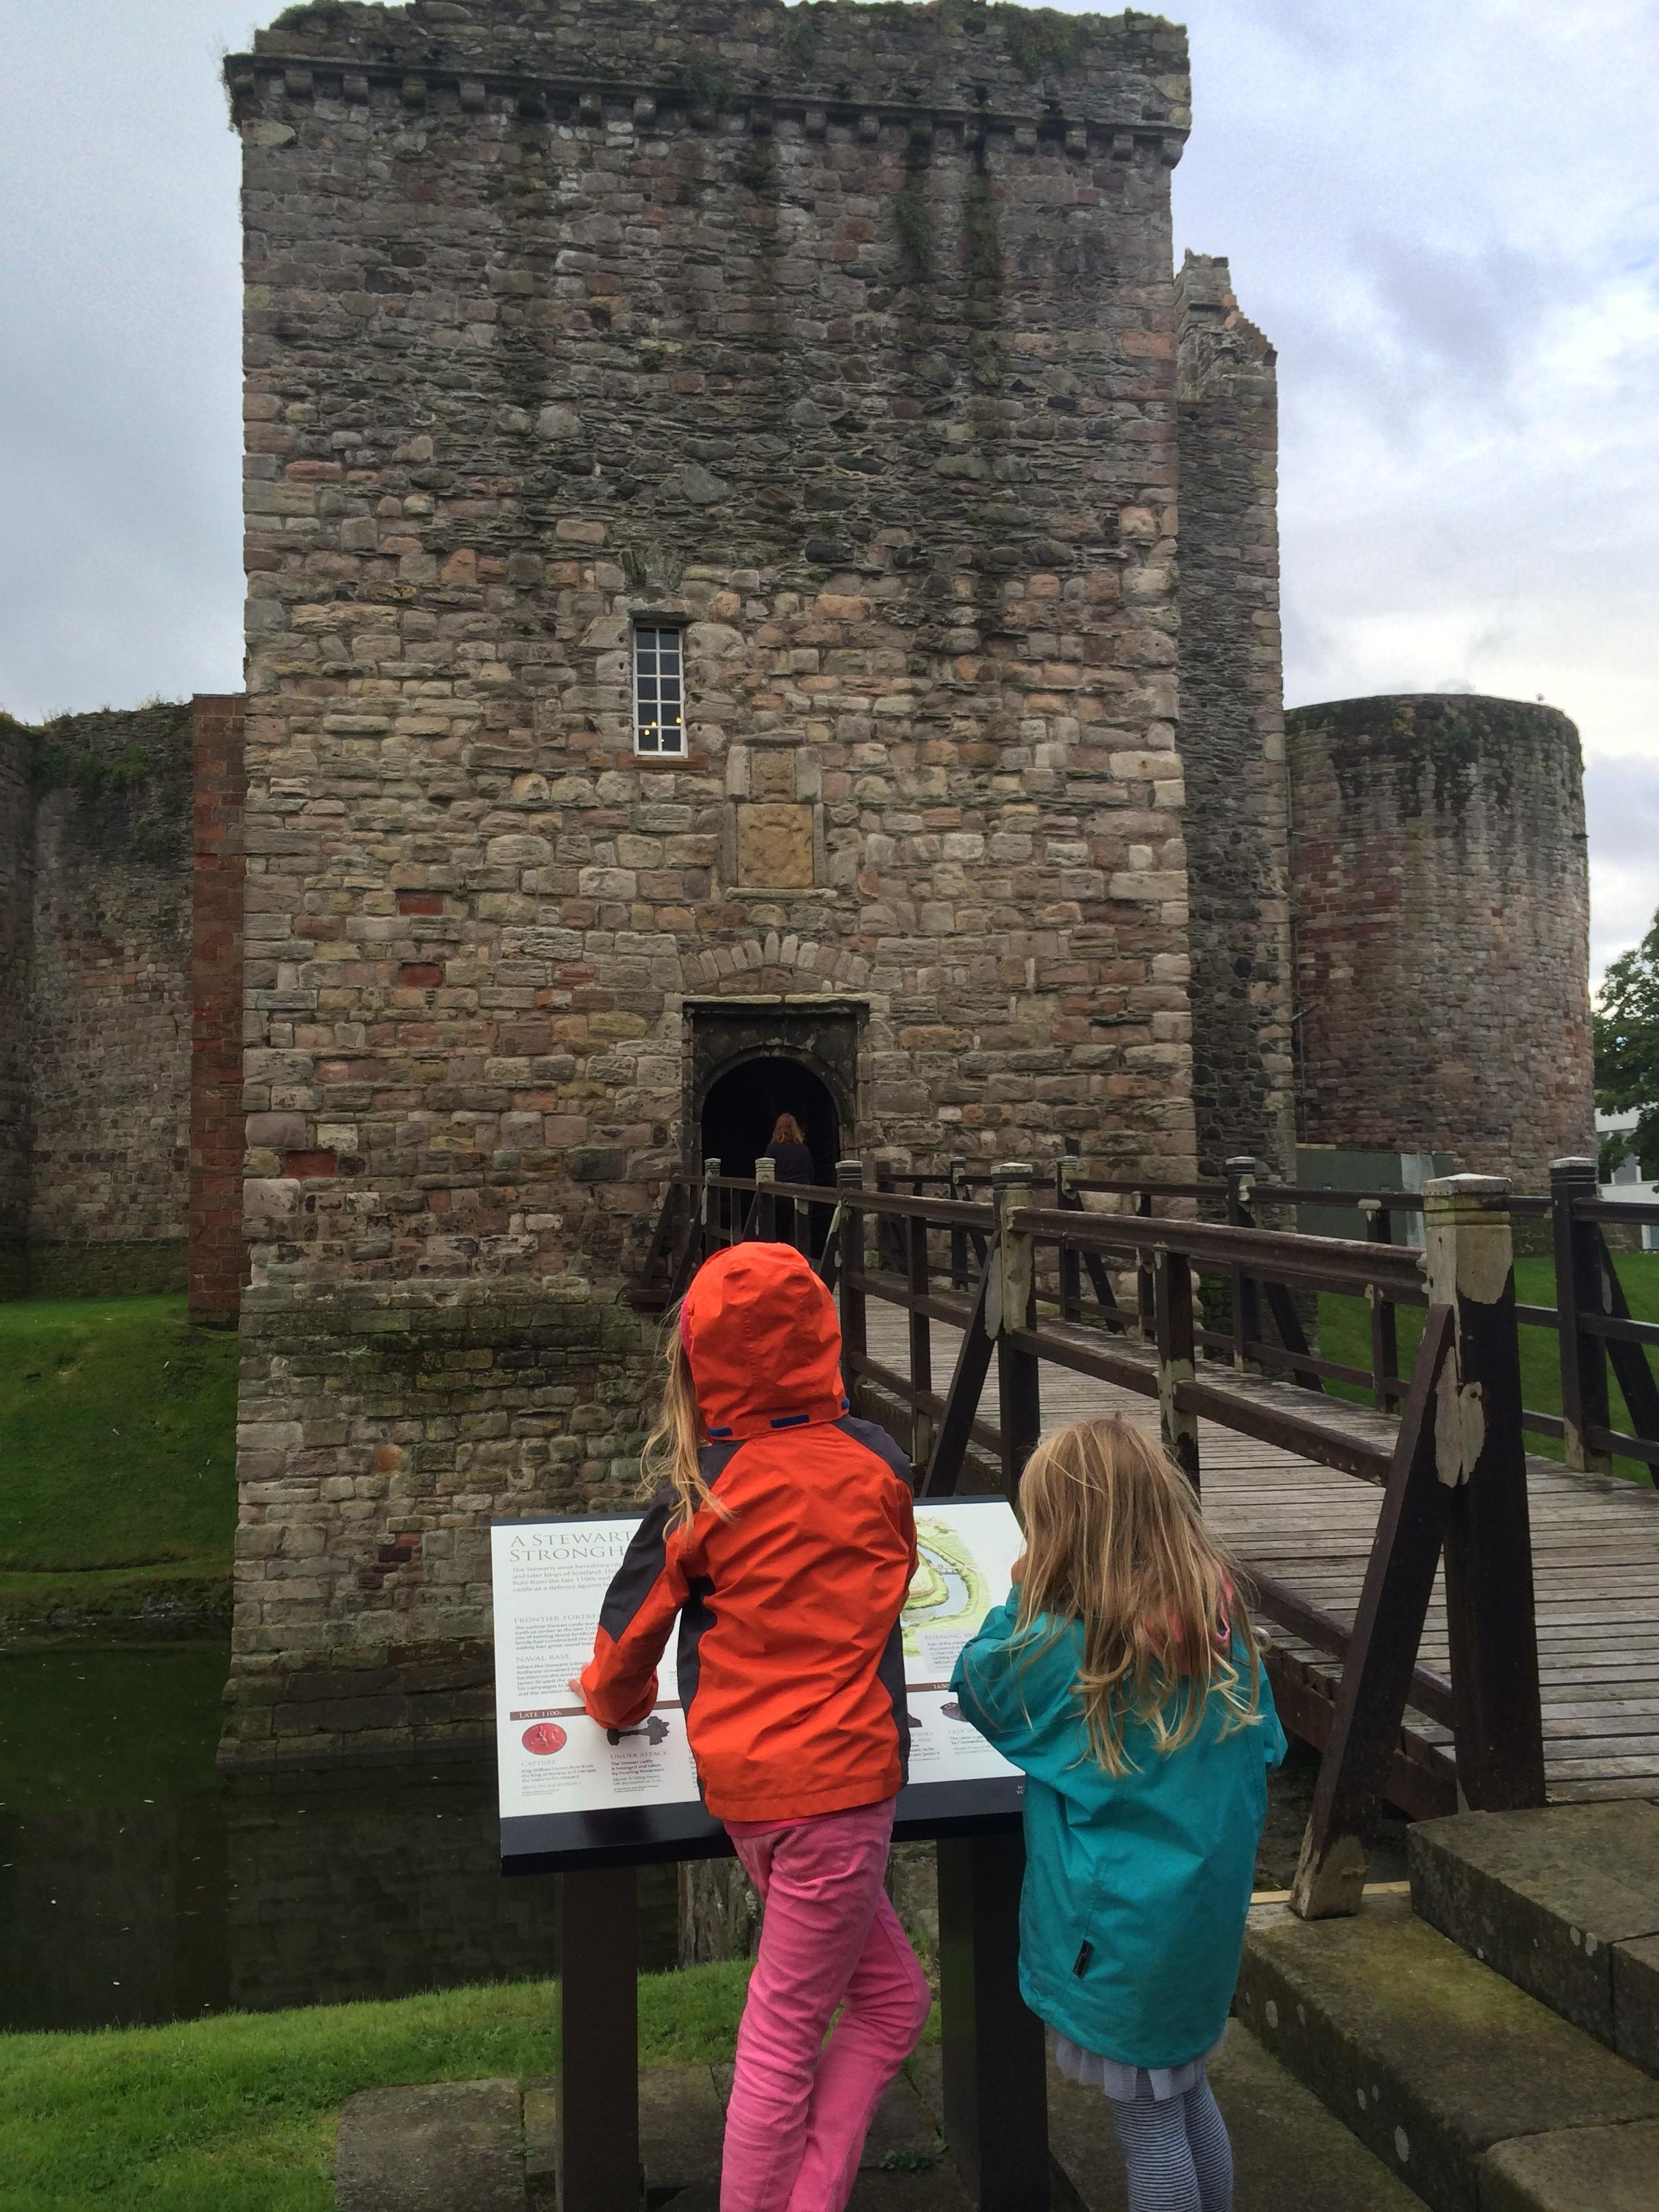 Robin's daughters exploring Rothesay Castle, Bute